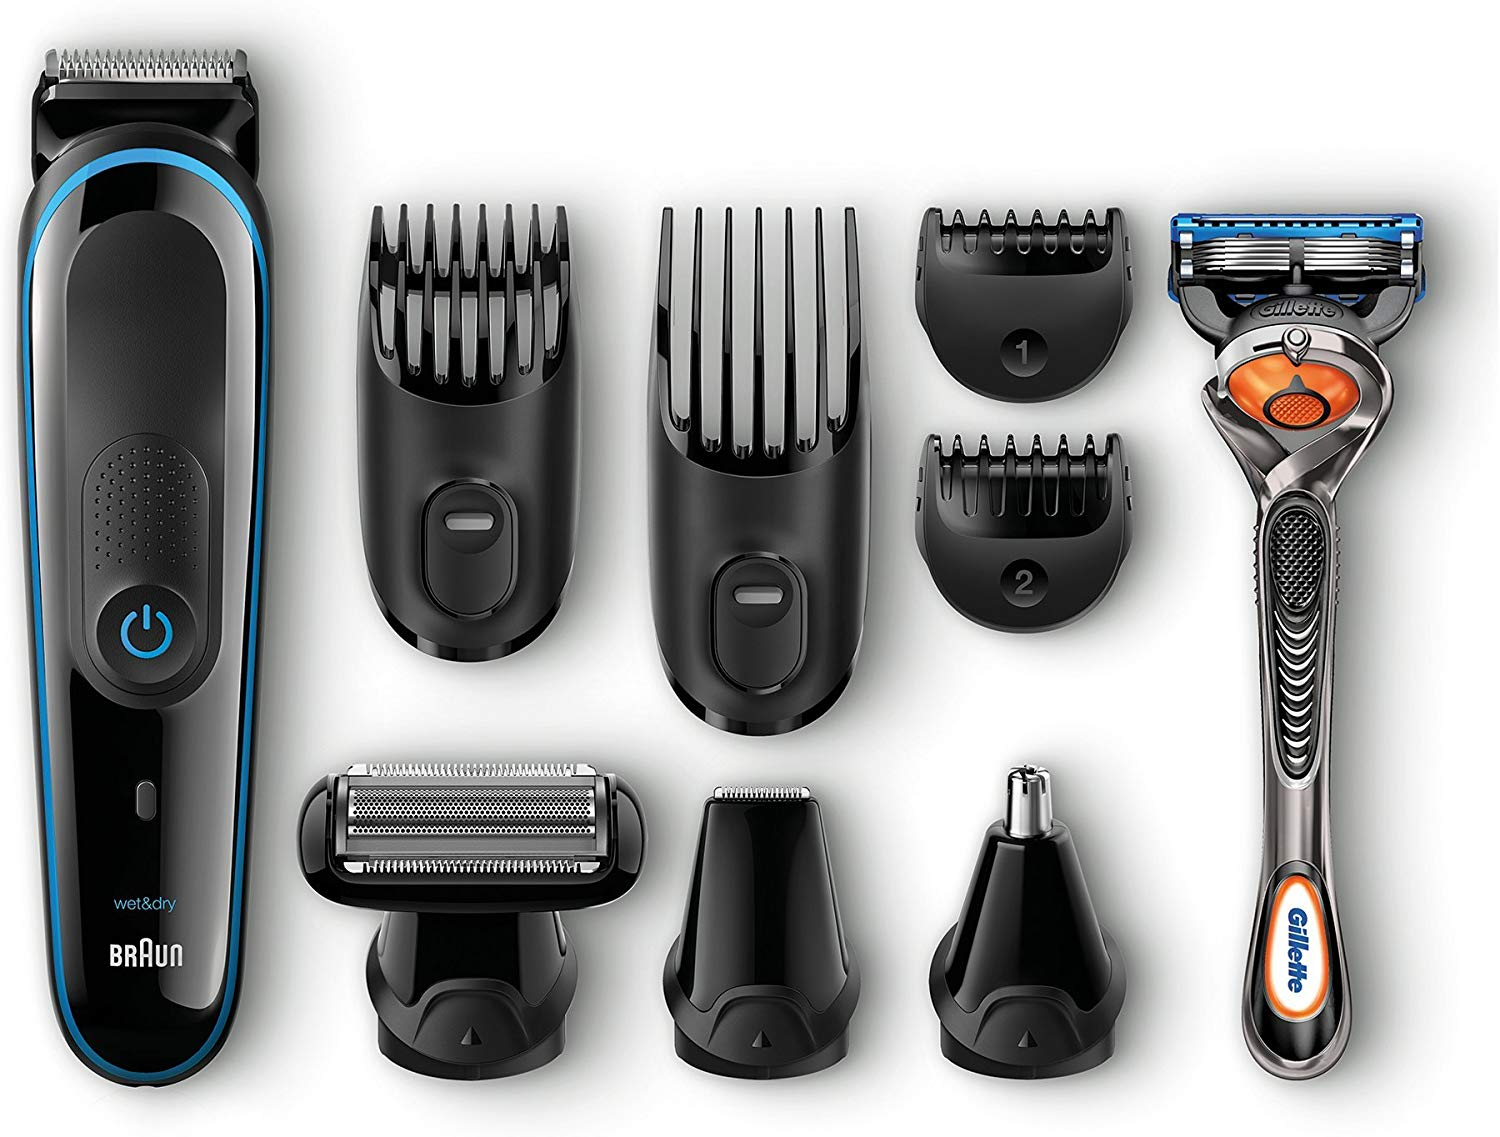 Braun Multi Grooming Kit MGK3020 - 6-in-one face and head trimming kit